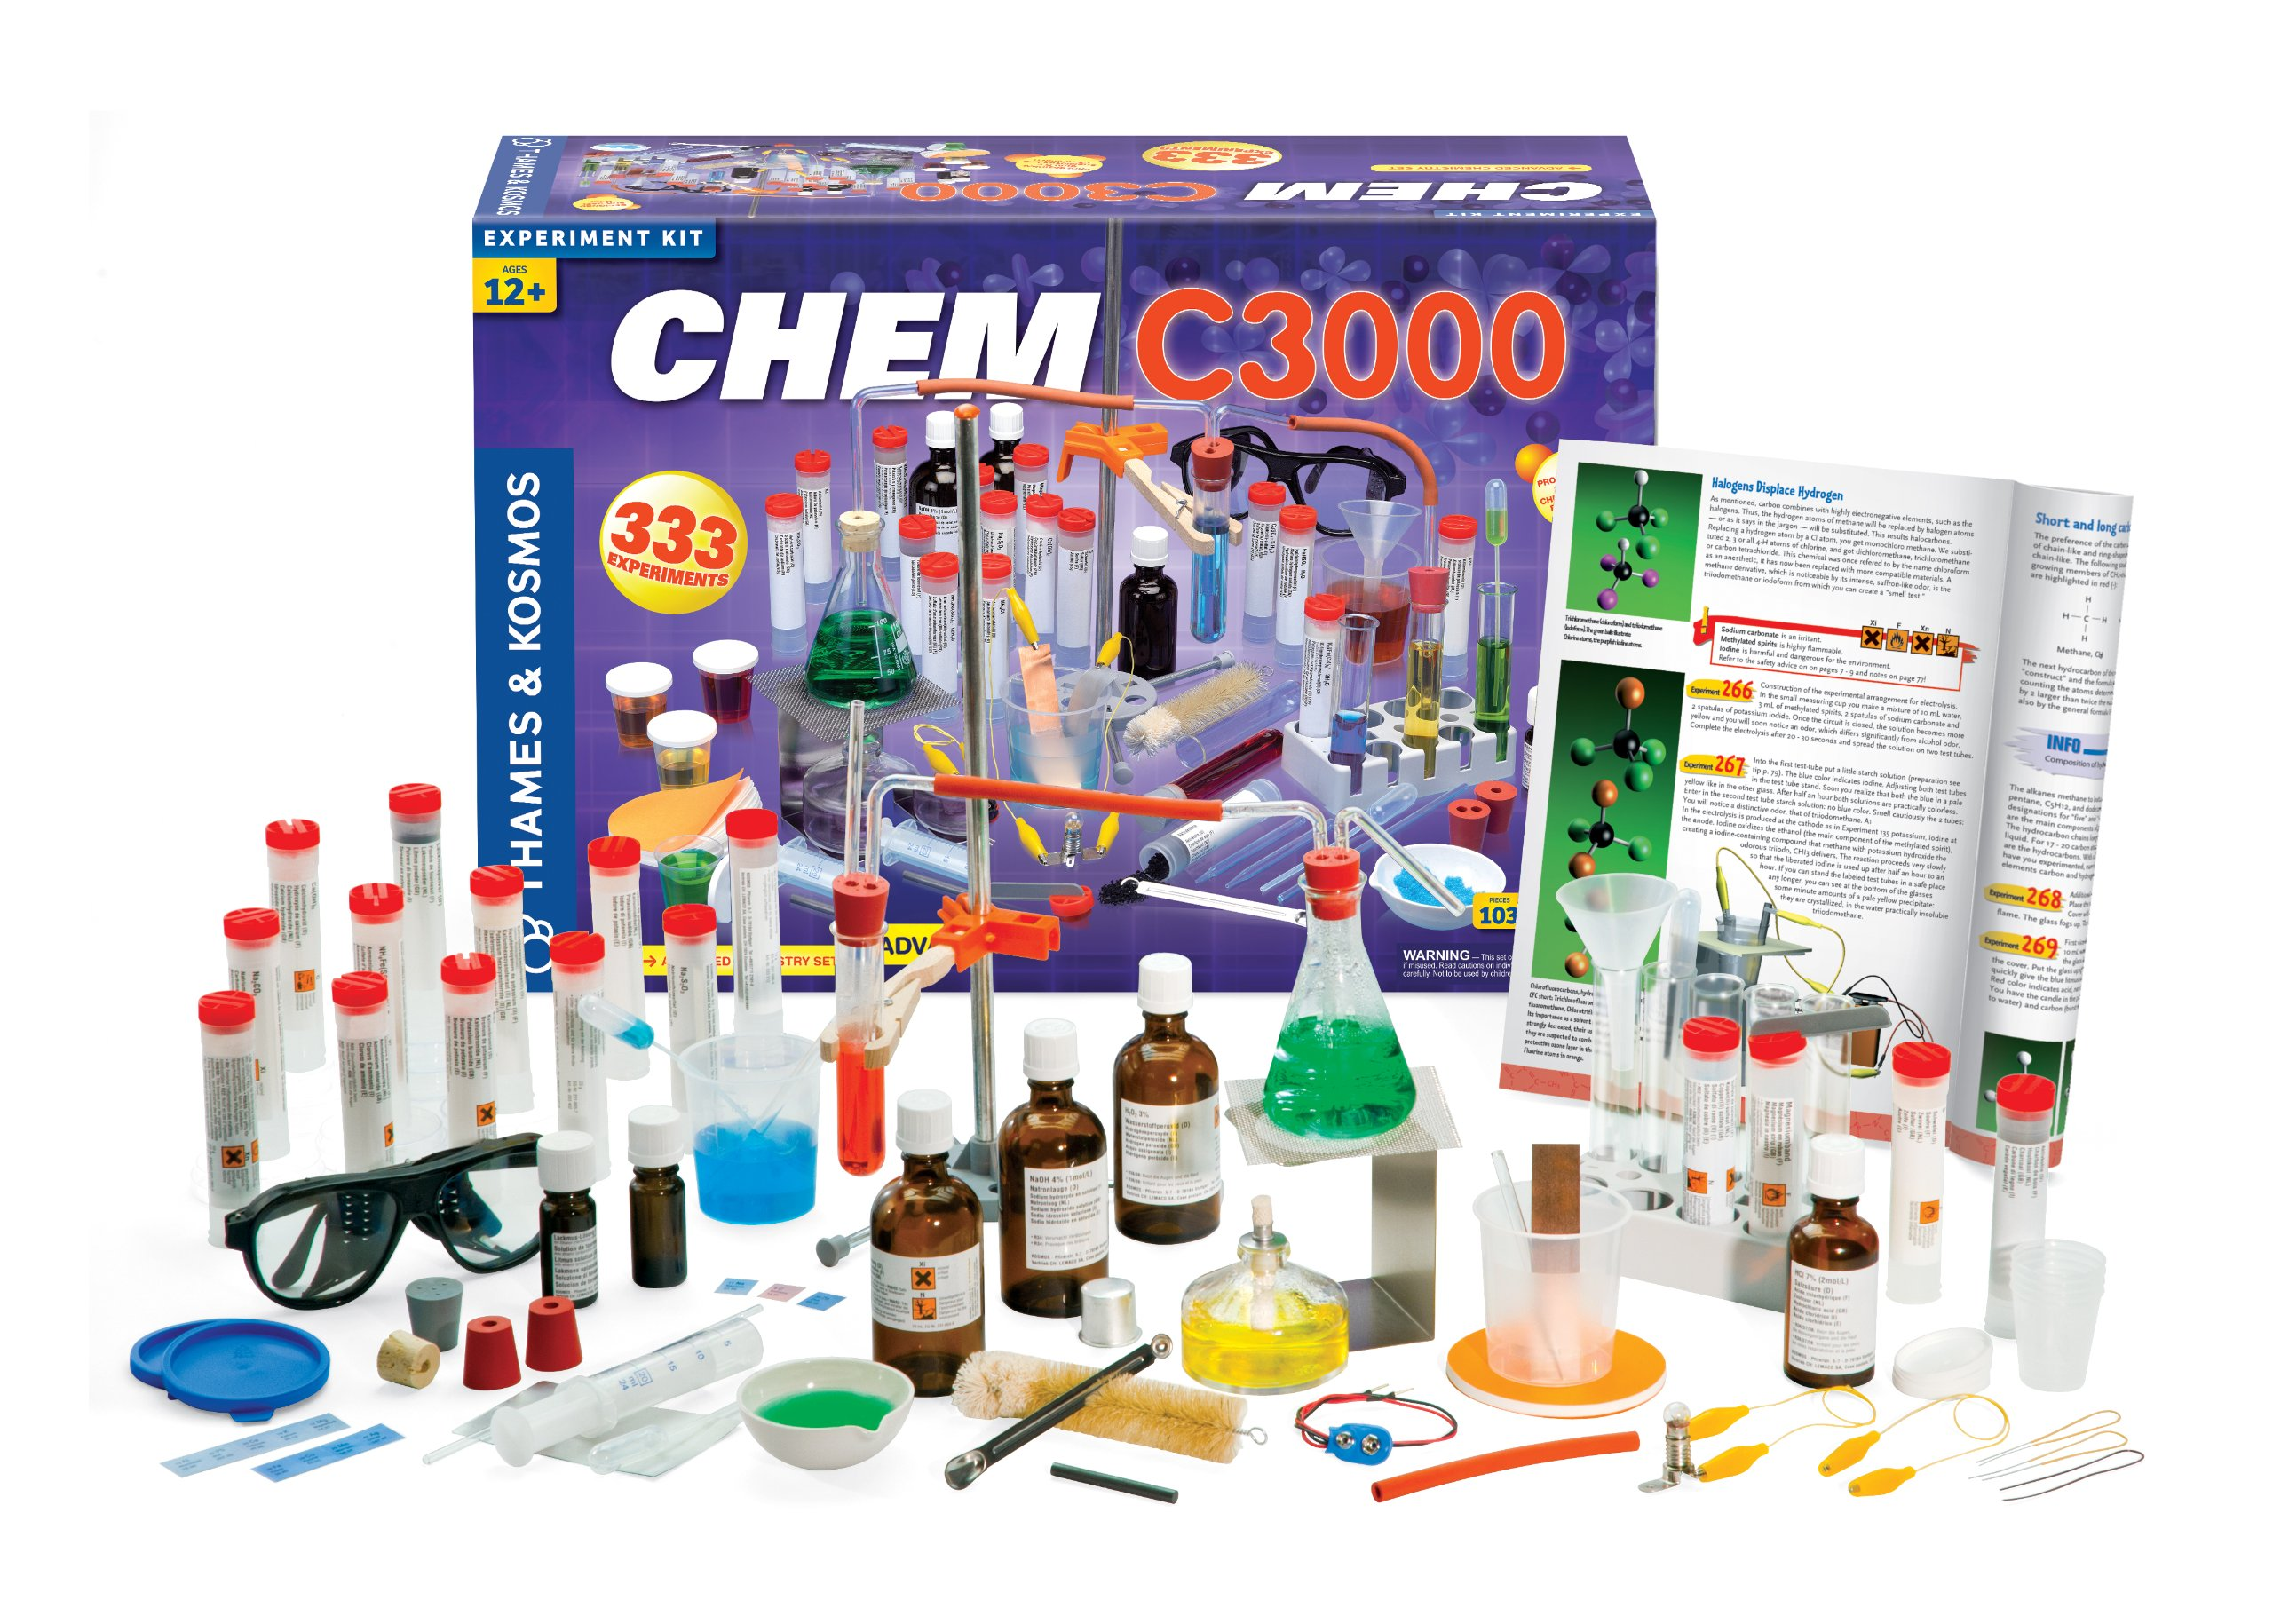 Thames & Kosmos Chem C3000 (V 2.0) Chemistry Set with 333 Experiments & 192 Page Lab Manual, Student Laboratory Quality Instruments & Chemicals by Thames & Kosmos (Image #2)